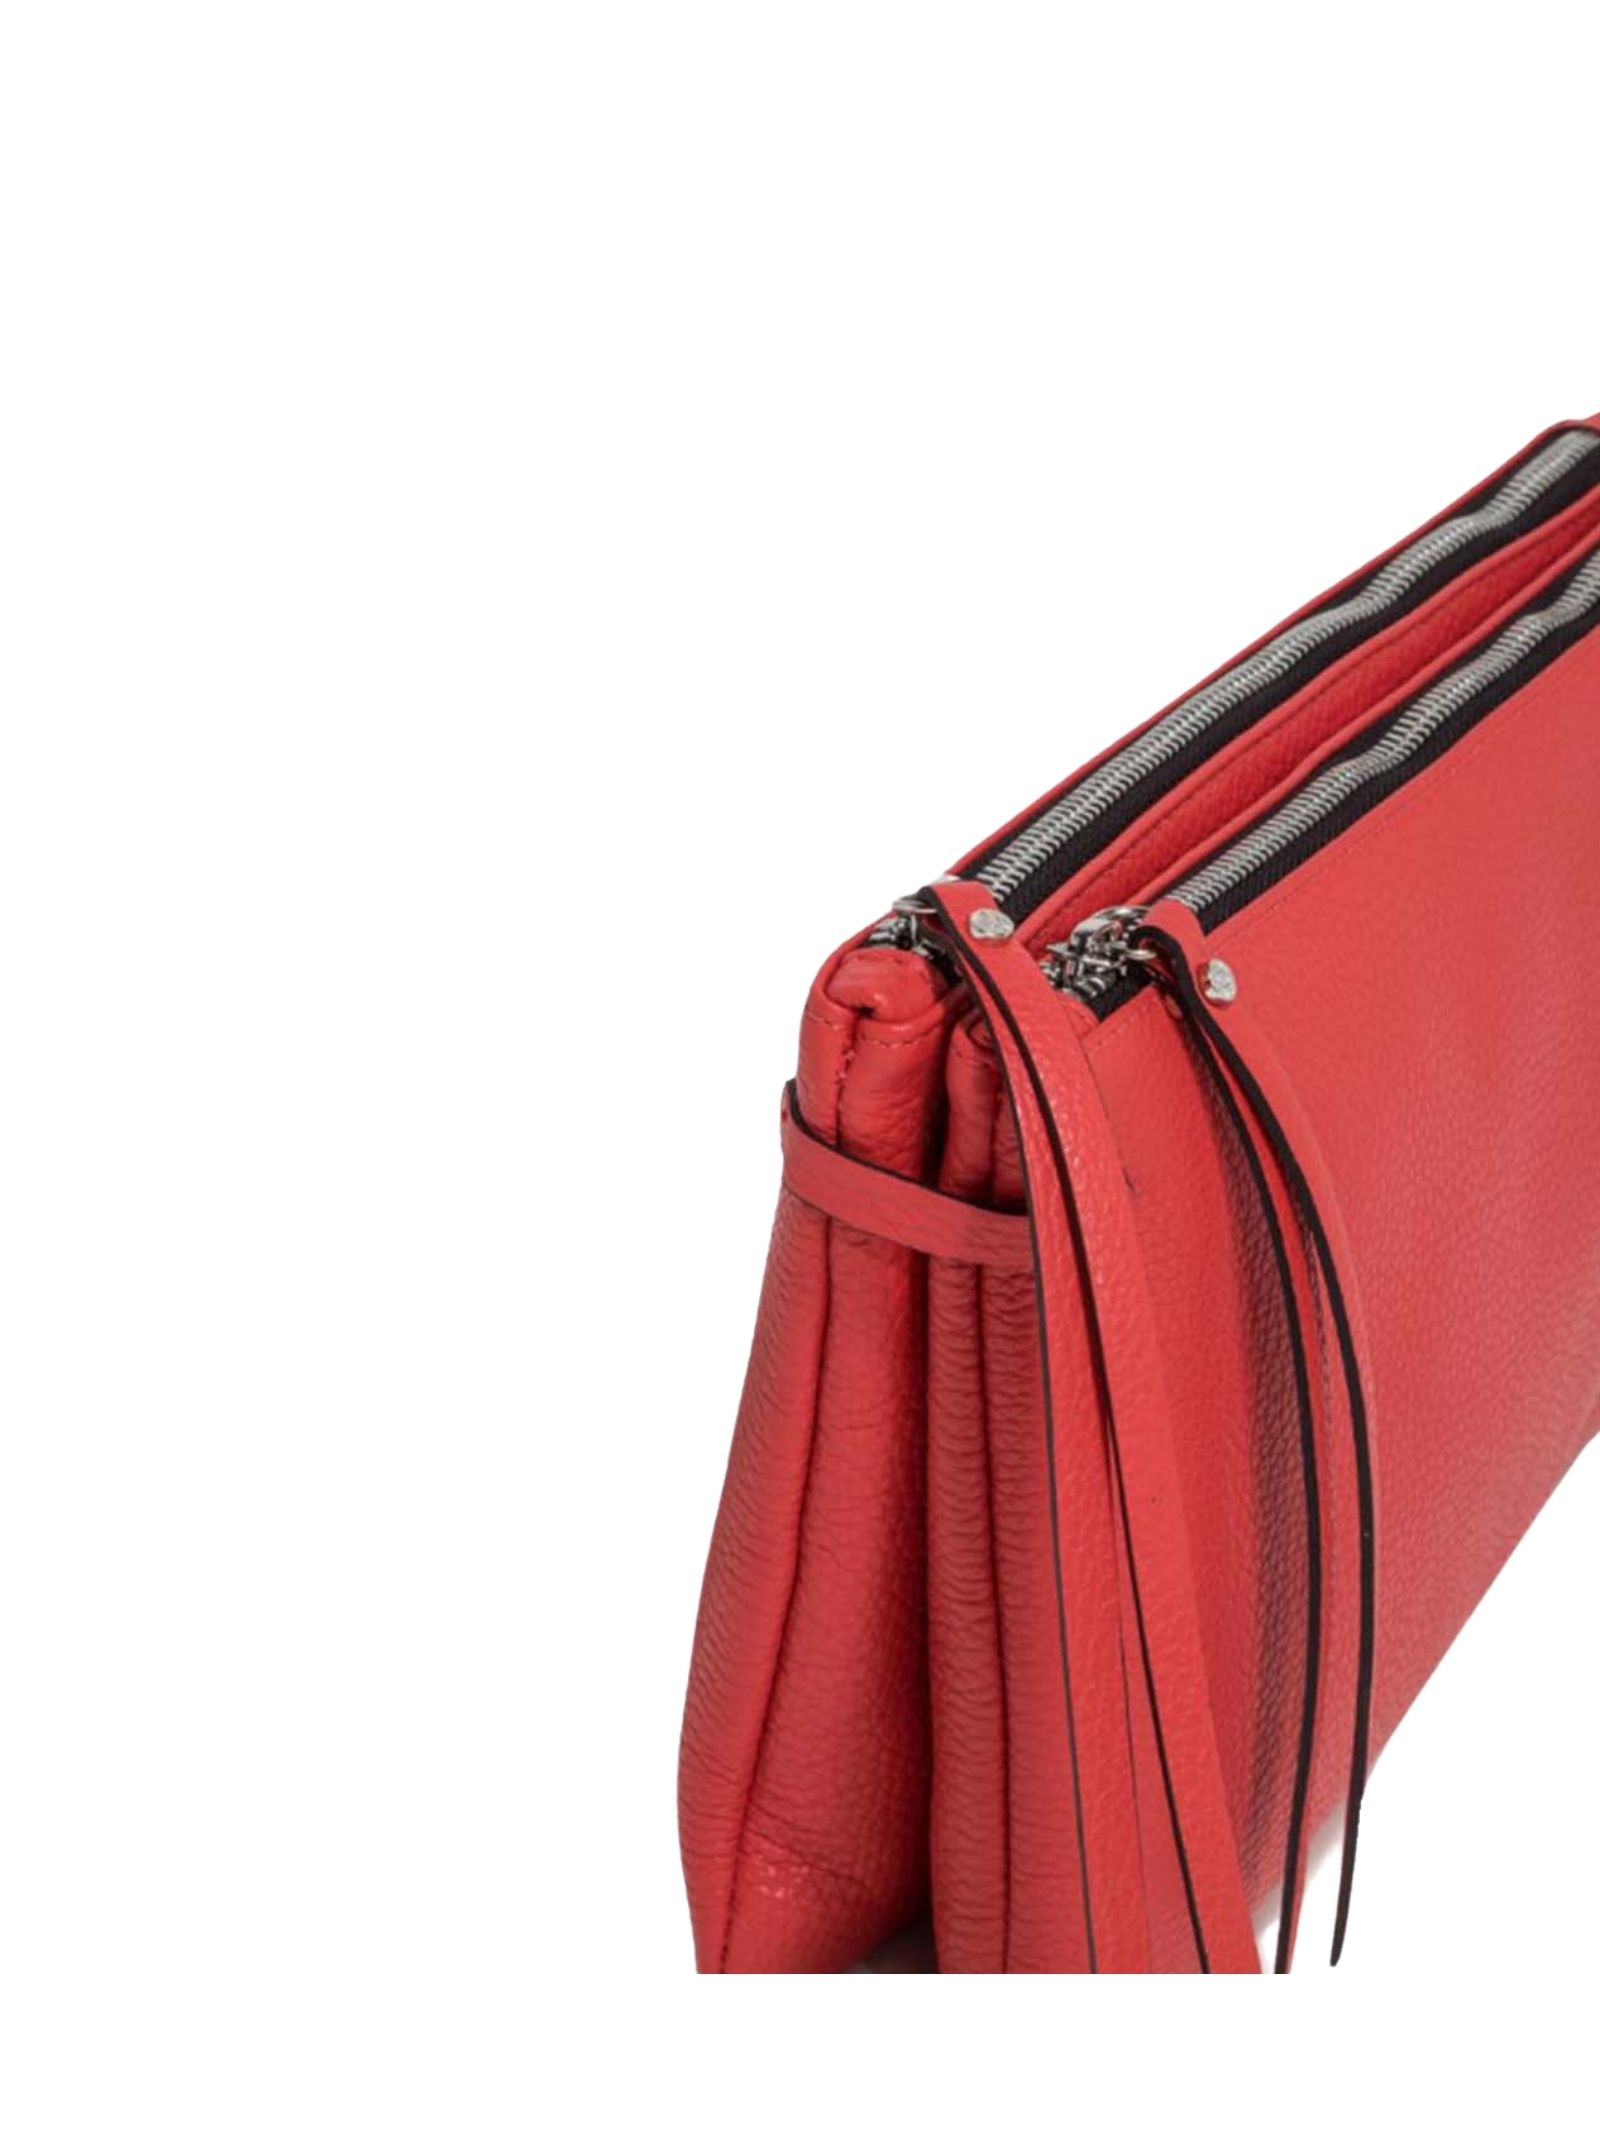 Hermy Double Clutch Bag Woman In Red Leather With Handle And Adjustable And Removable Shoulder Strap Gianni Chiarini | Bags and backpacks | BS369711707